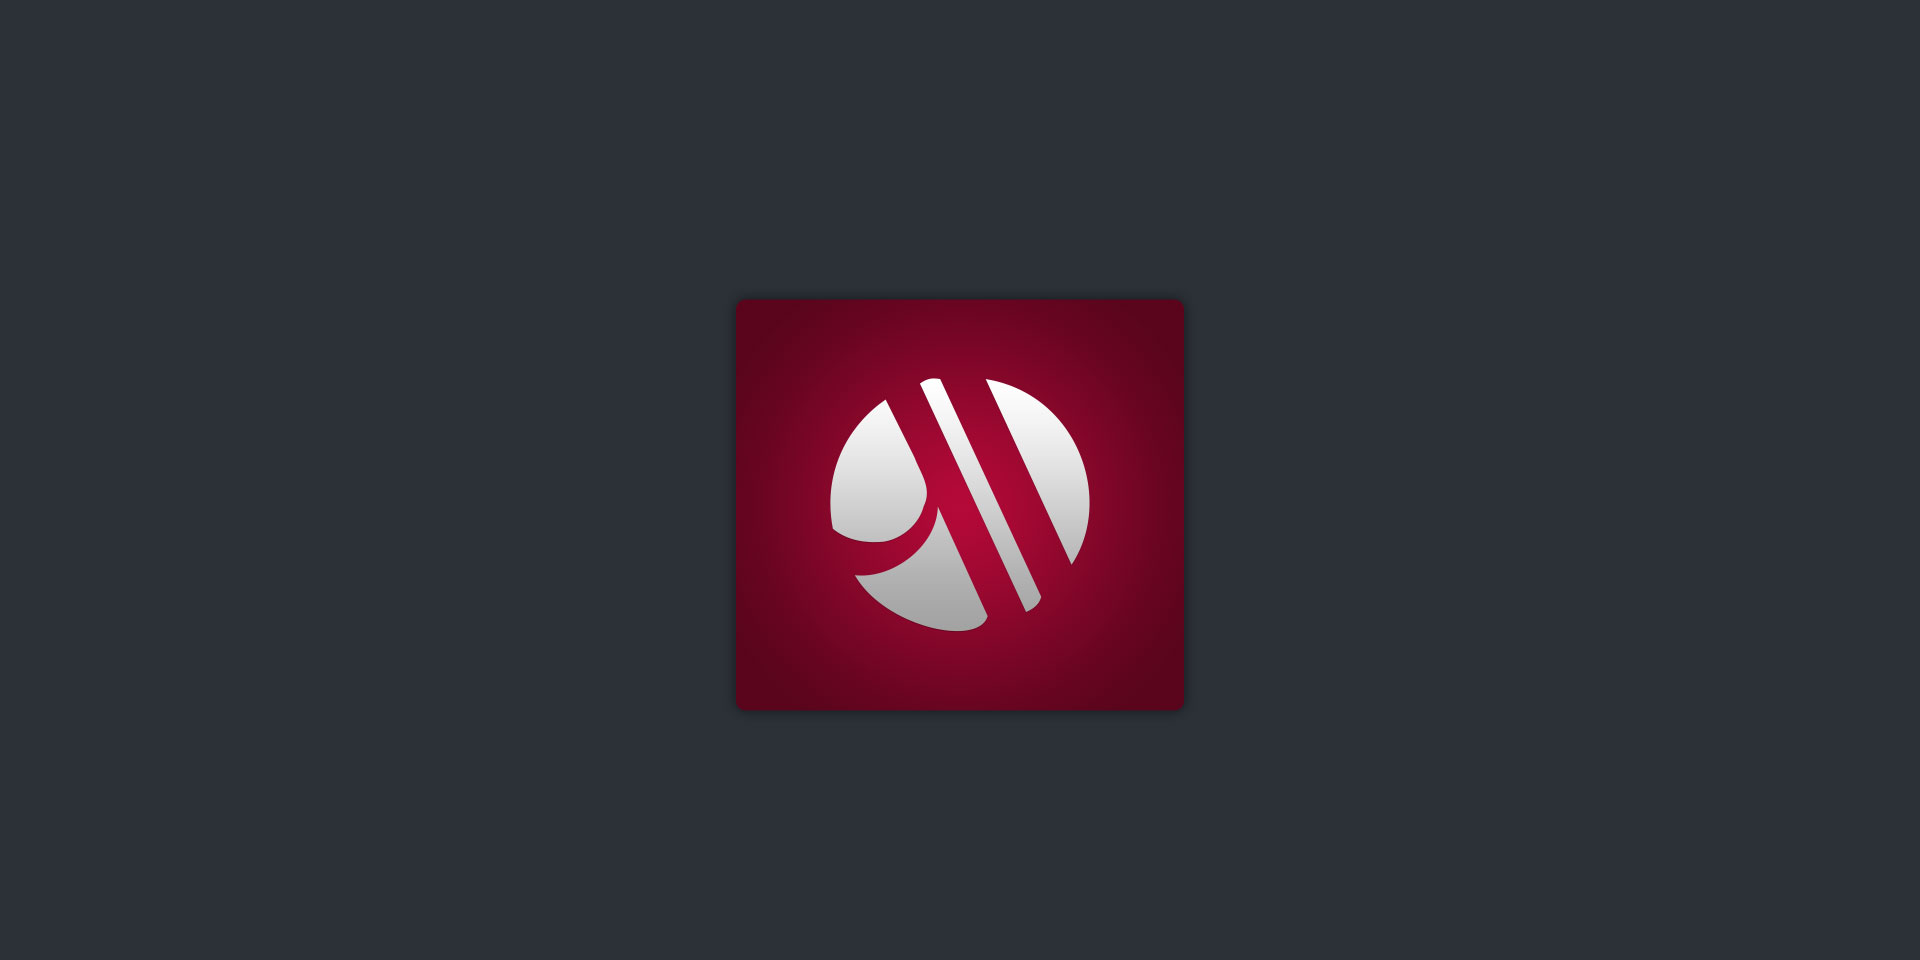 Protected: Marriott Responsive Redesign